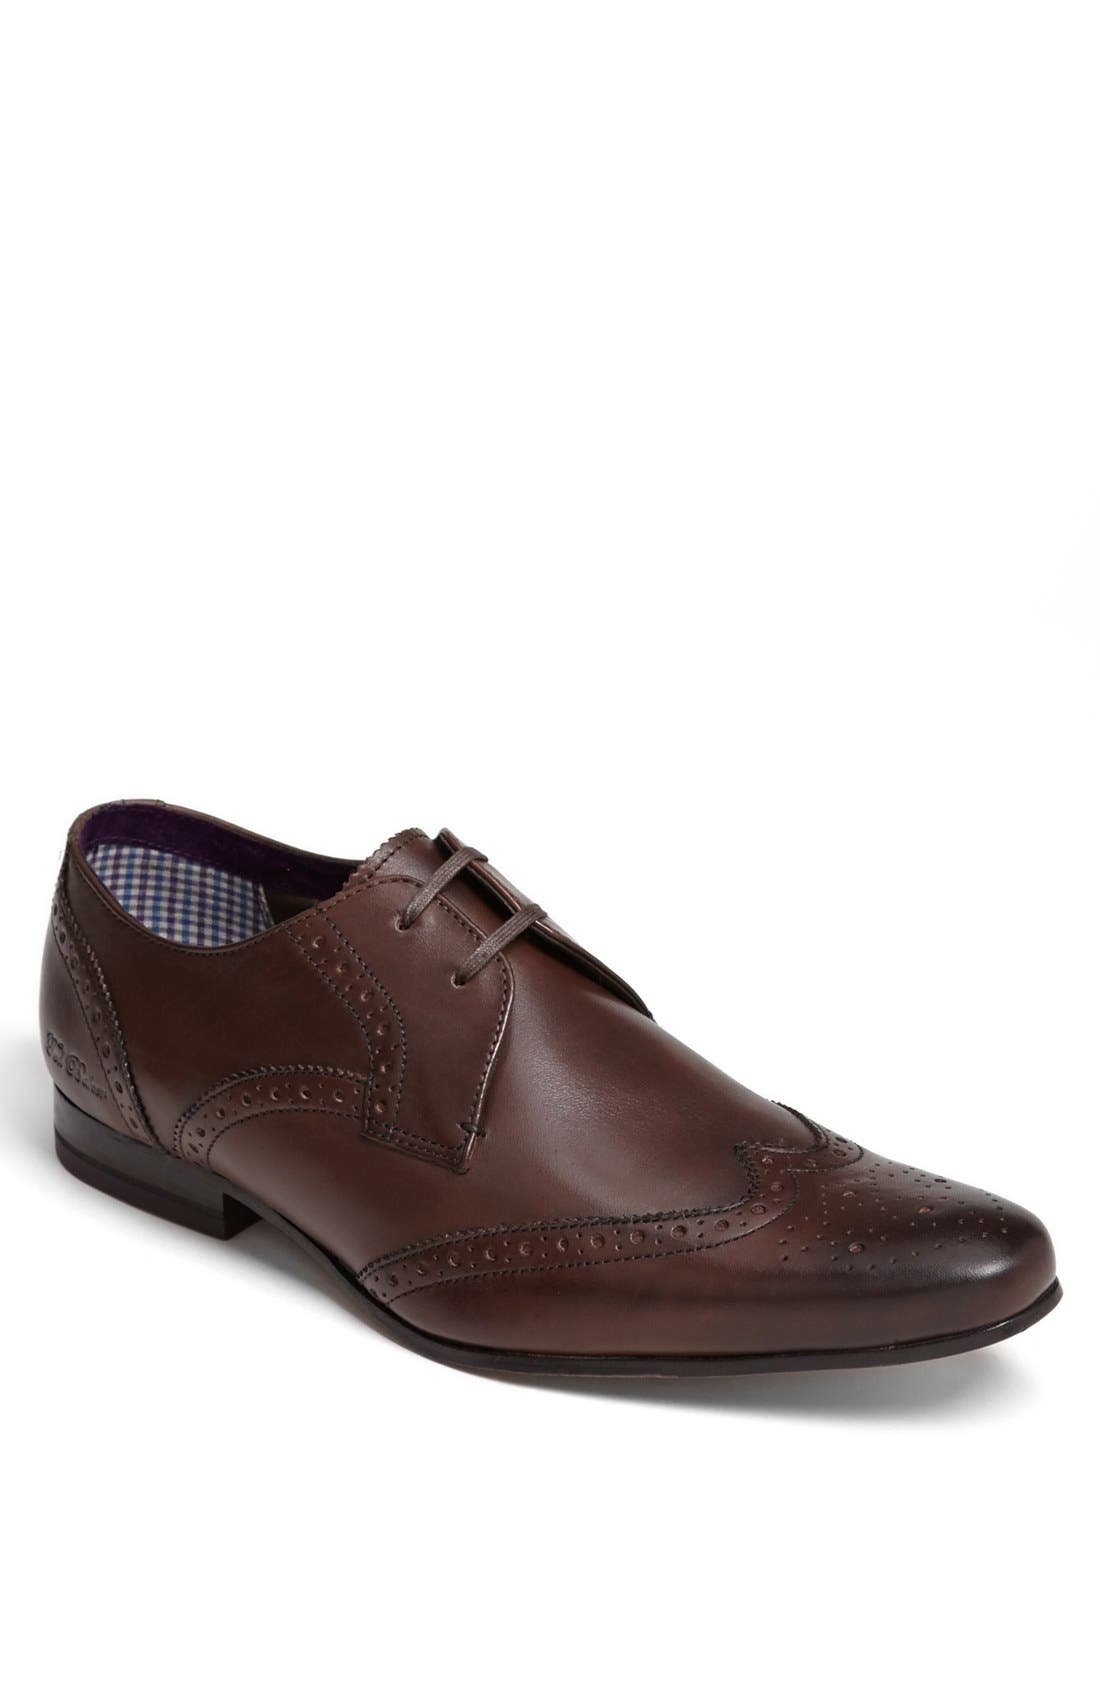 Main Image - Ted Baker London 'Nenoi' Wingtip